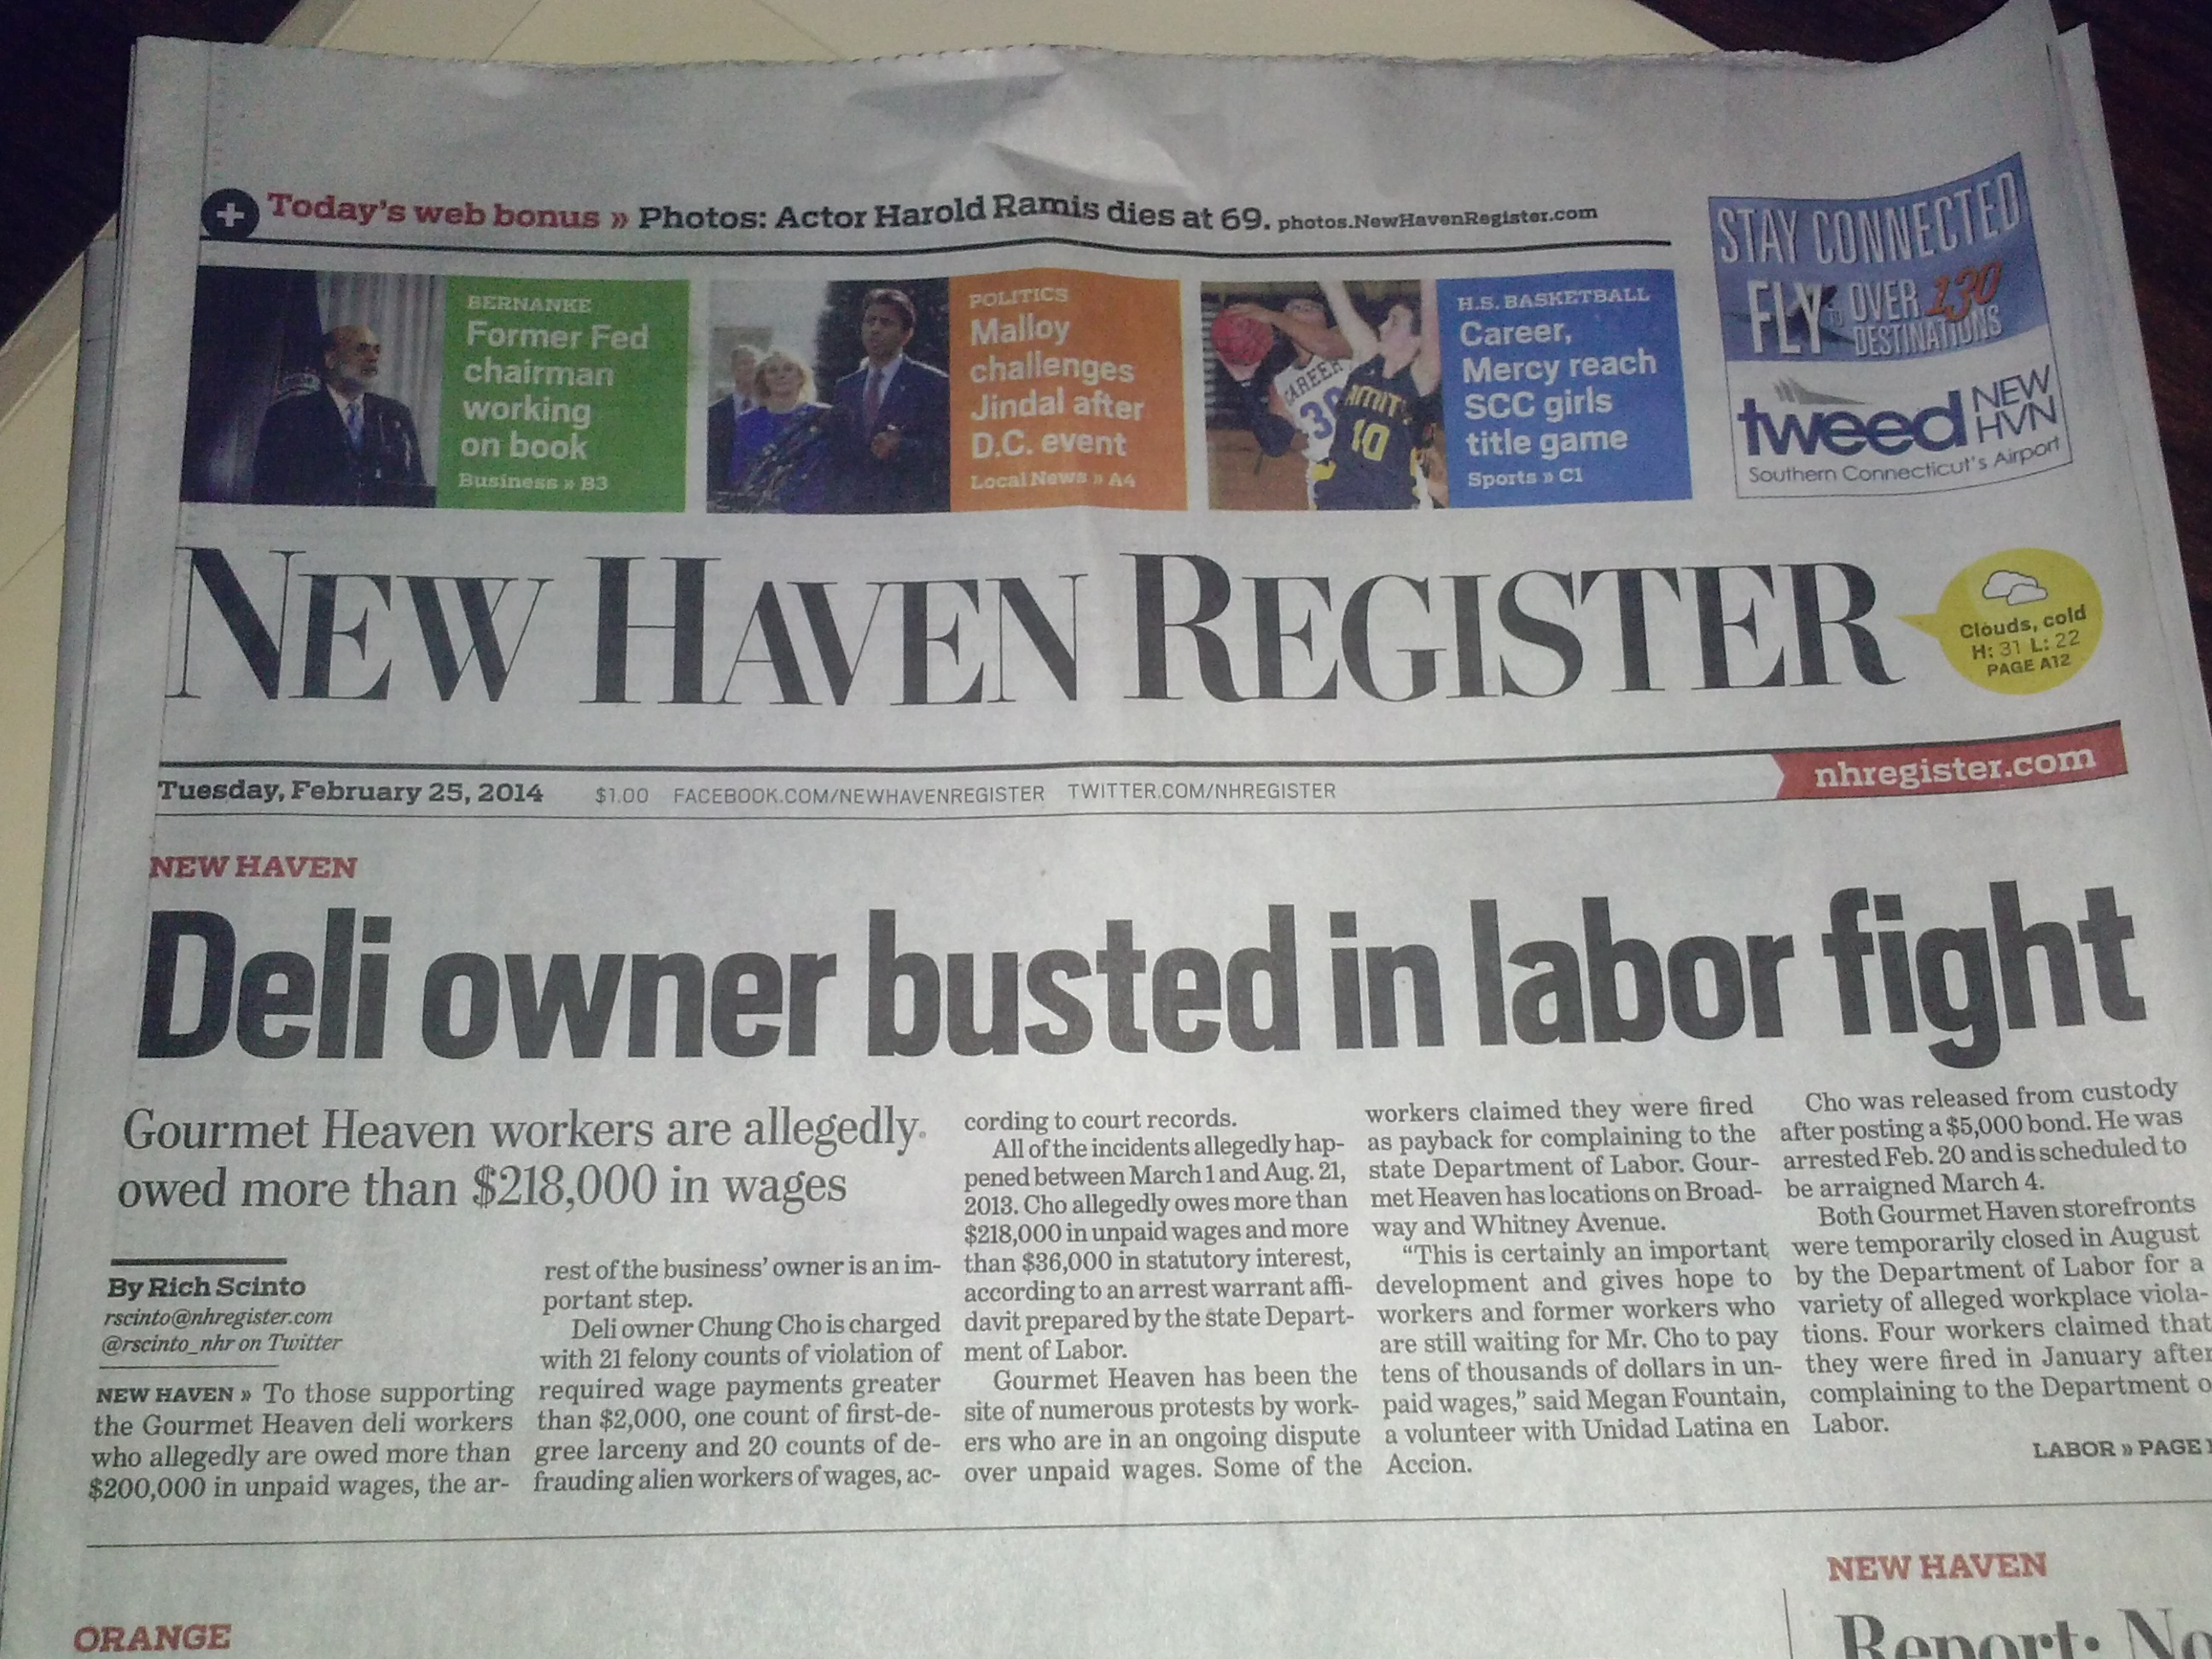 Deli owner busted in labor fight